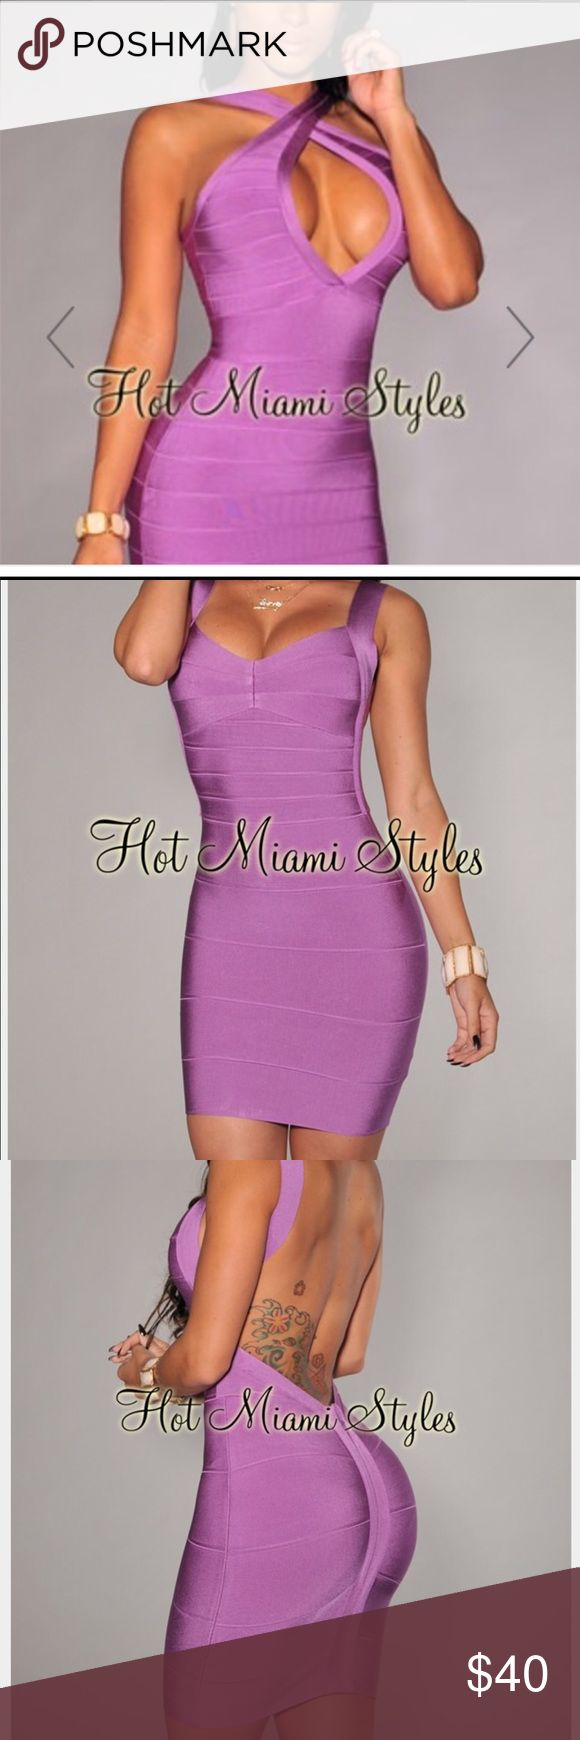 Hot Miami Styles Purple Bandage dress - small Curve hugging dress that can be worn crisscross or open. Size 0-4. Hot Miami Styles Dresses Mini